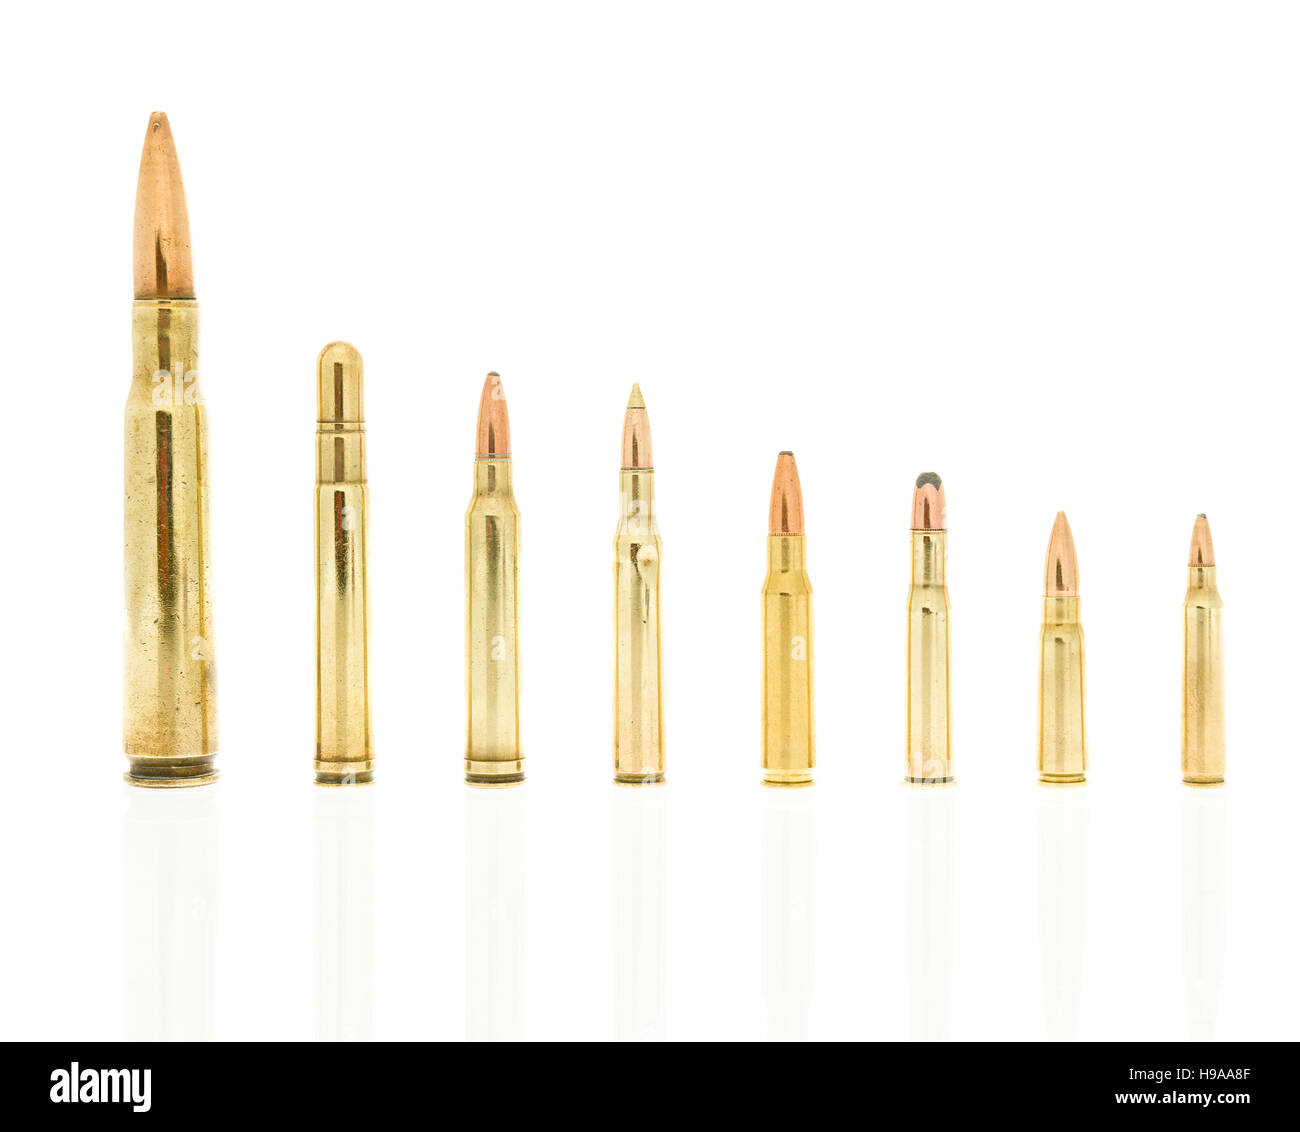 Rife rounds on an isolated background including 223, 5.56 nato, 39, 7.62 AK47, 30-30 win, 308 win, 270 win, 300 - Stock Image